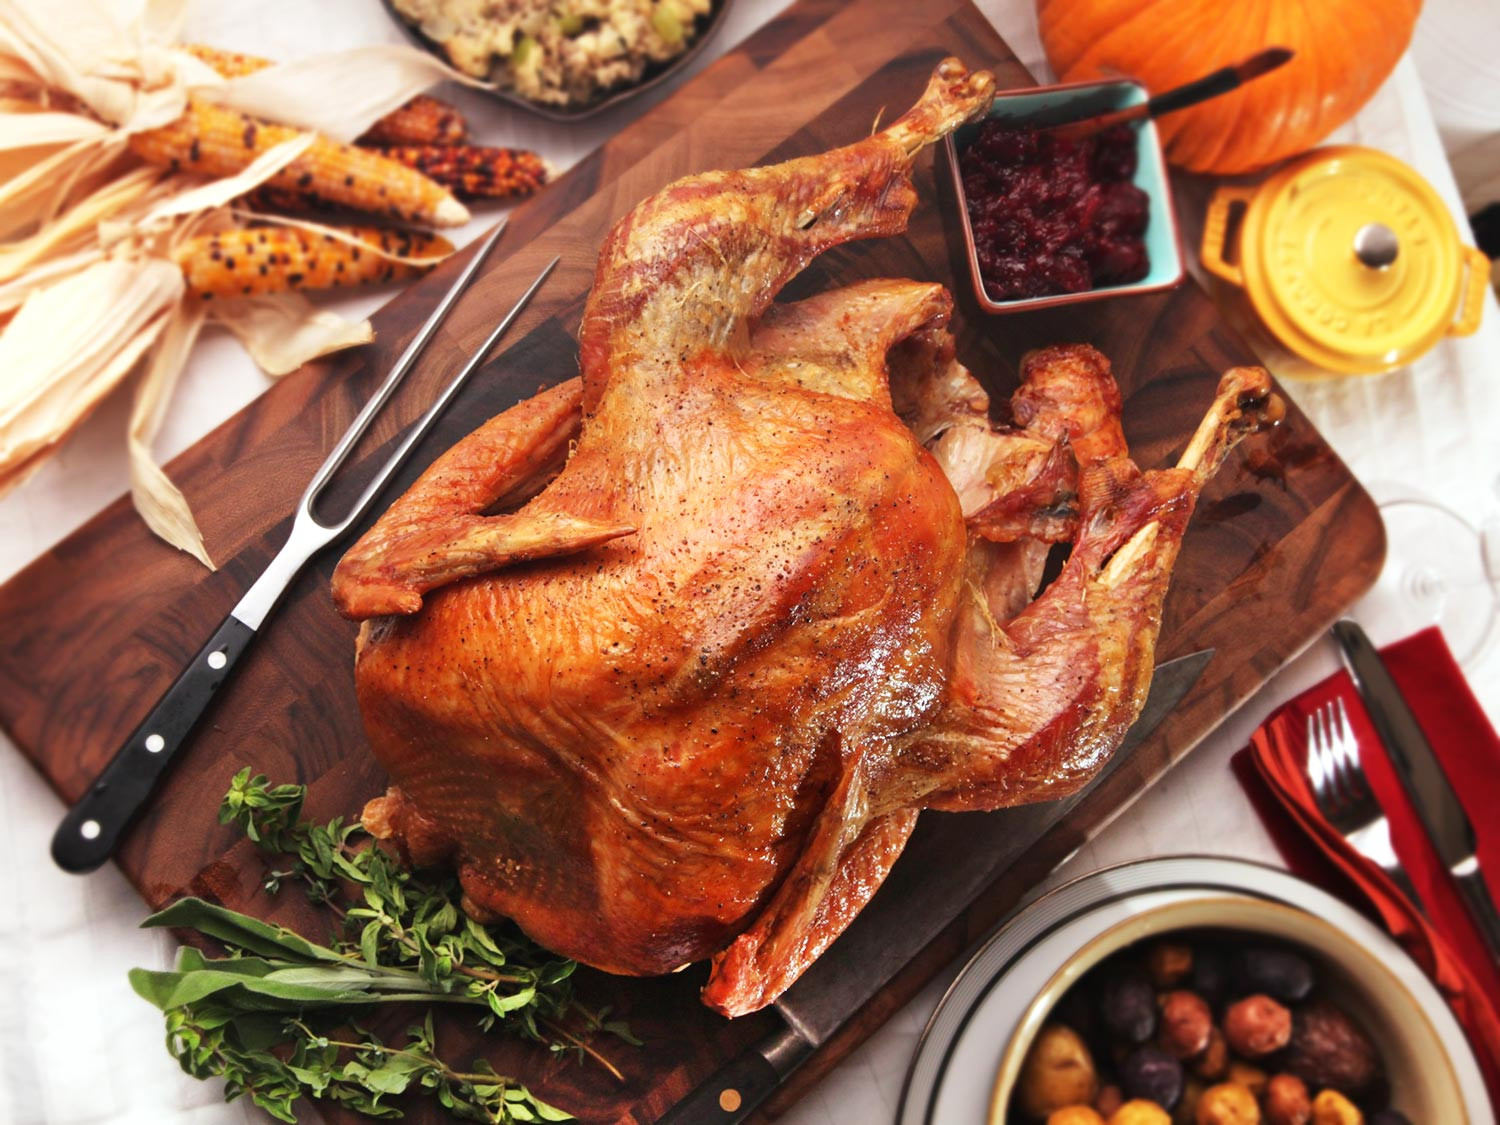 Roast Turkey Recipes Thanksgiving  The Best Simple Roast Turkey With Gravy Recipe